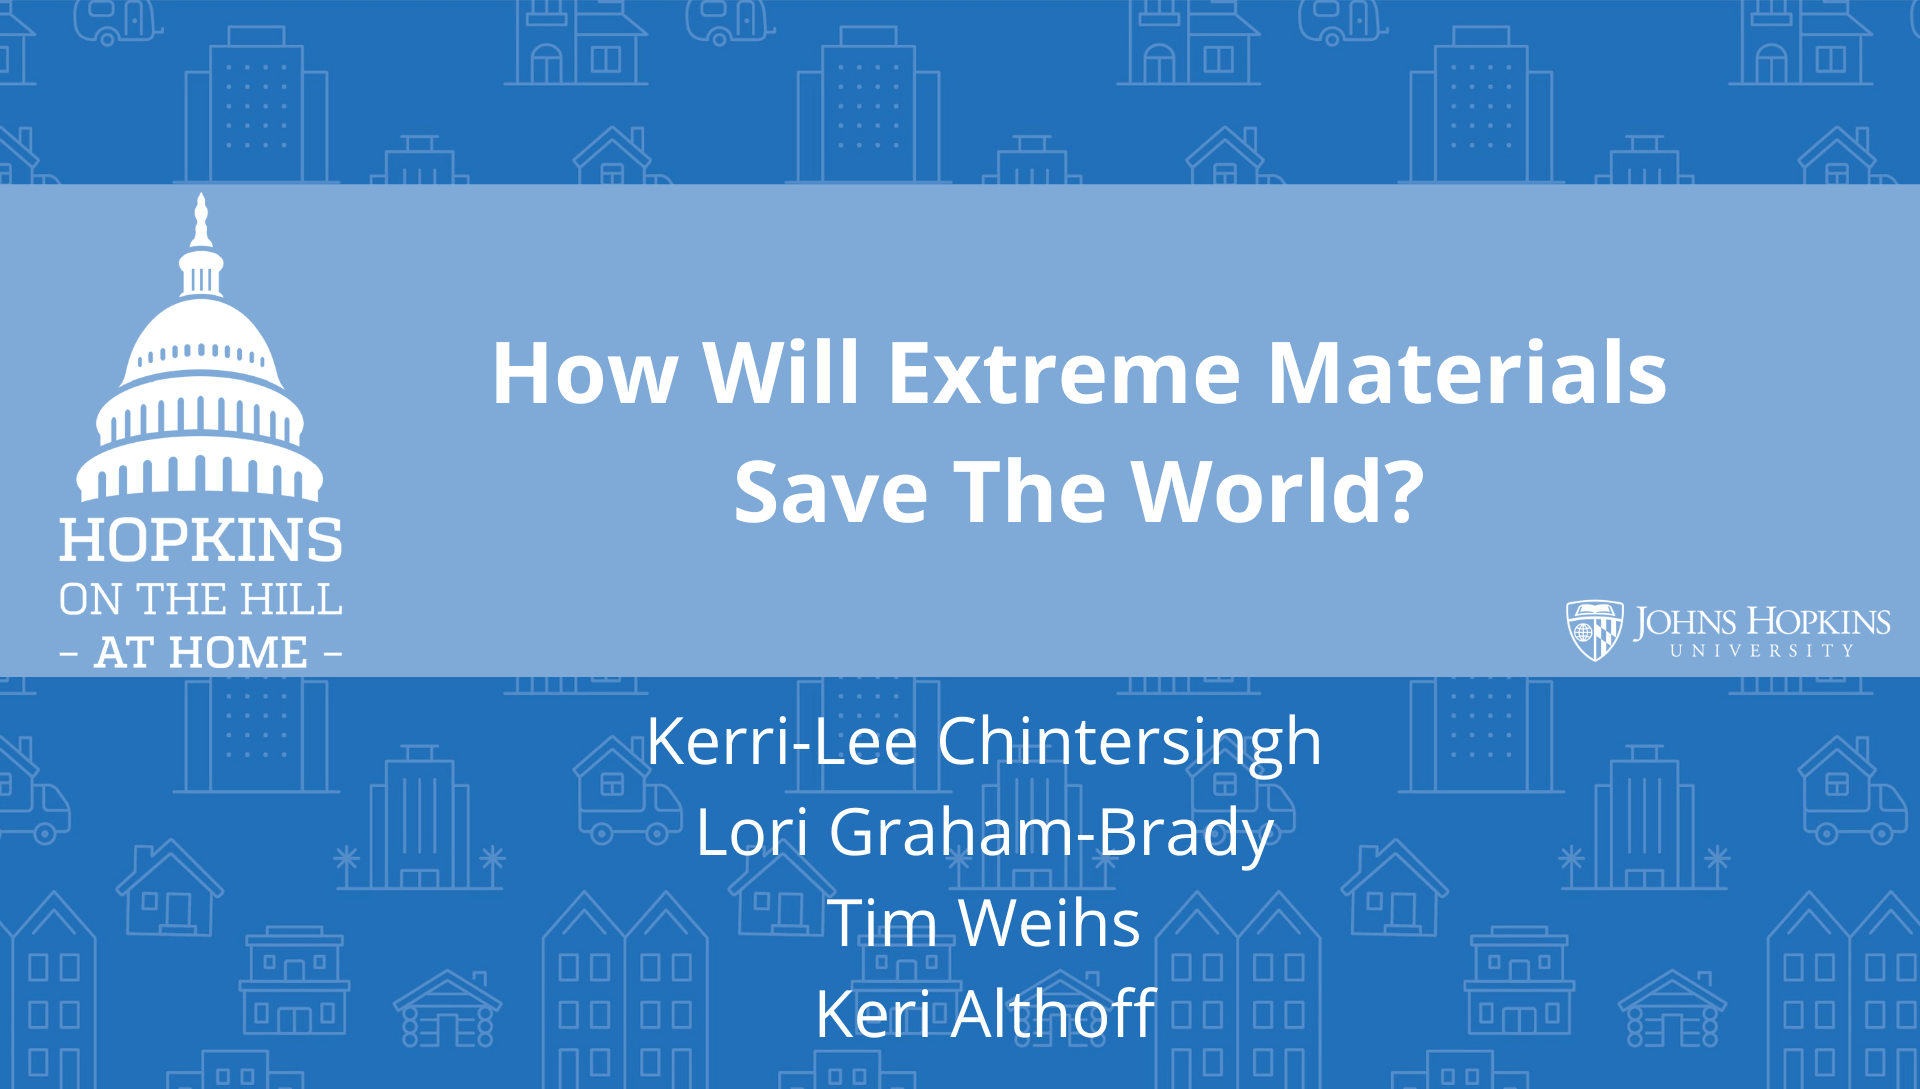 "Solid blue background featuring line drawings of various types of homes with text reading ""How will extreme materials save the world?"" and names listed below: Tim Weihs, Lori Graham-Brady, Kerri-Lee Chintersingh, Keri Althoff. On the left the Hopkins on the Hill at Home logo featuring the Capitol Dome. On the right, the Johns Hopkins University logo."